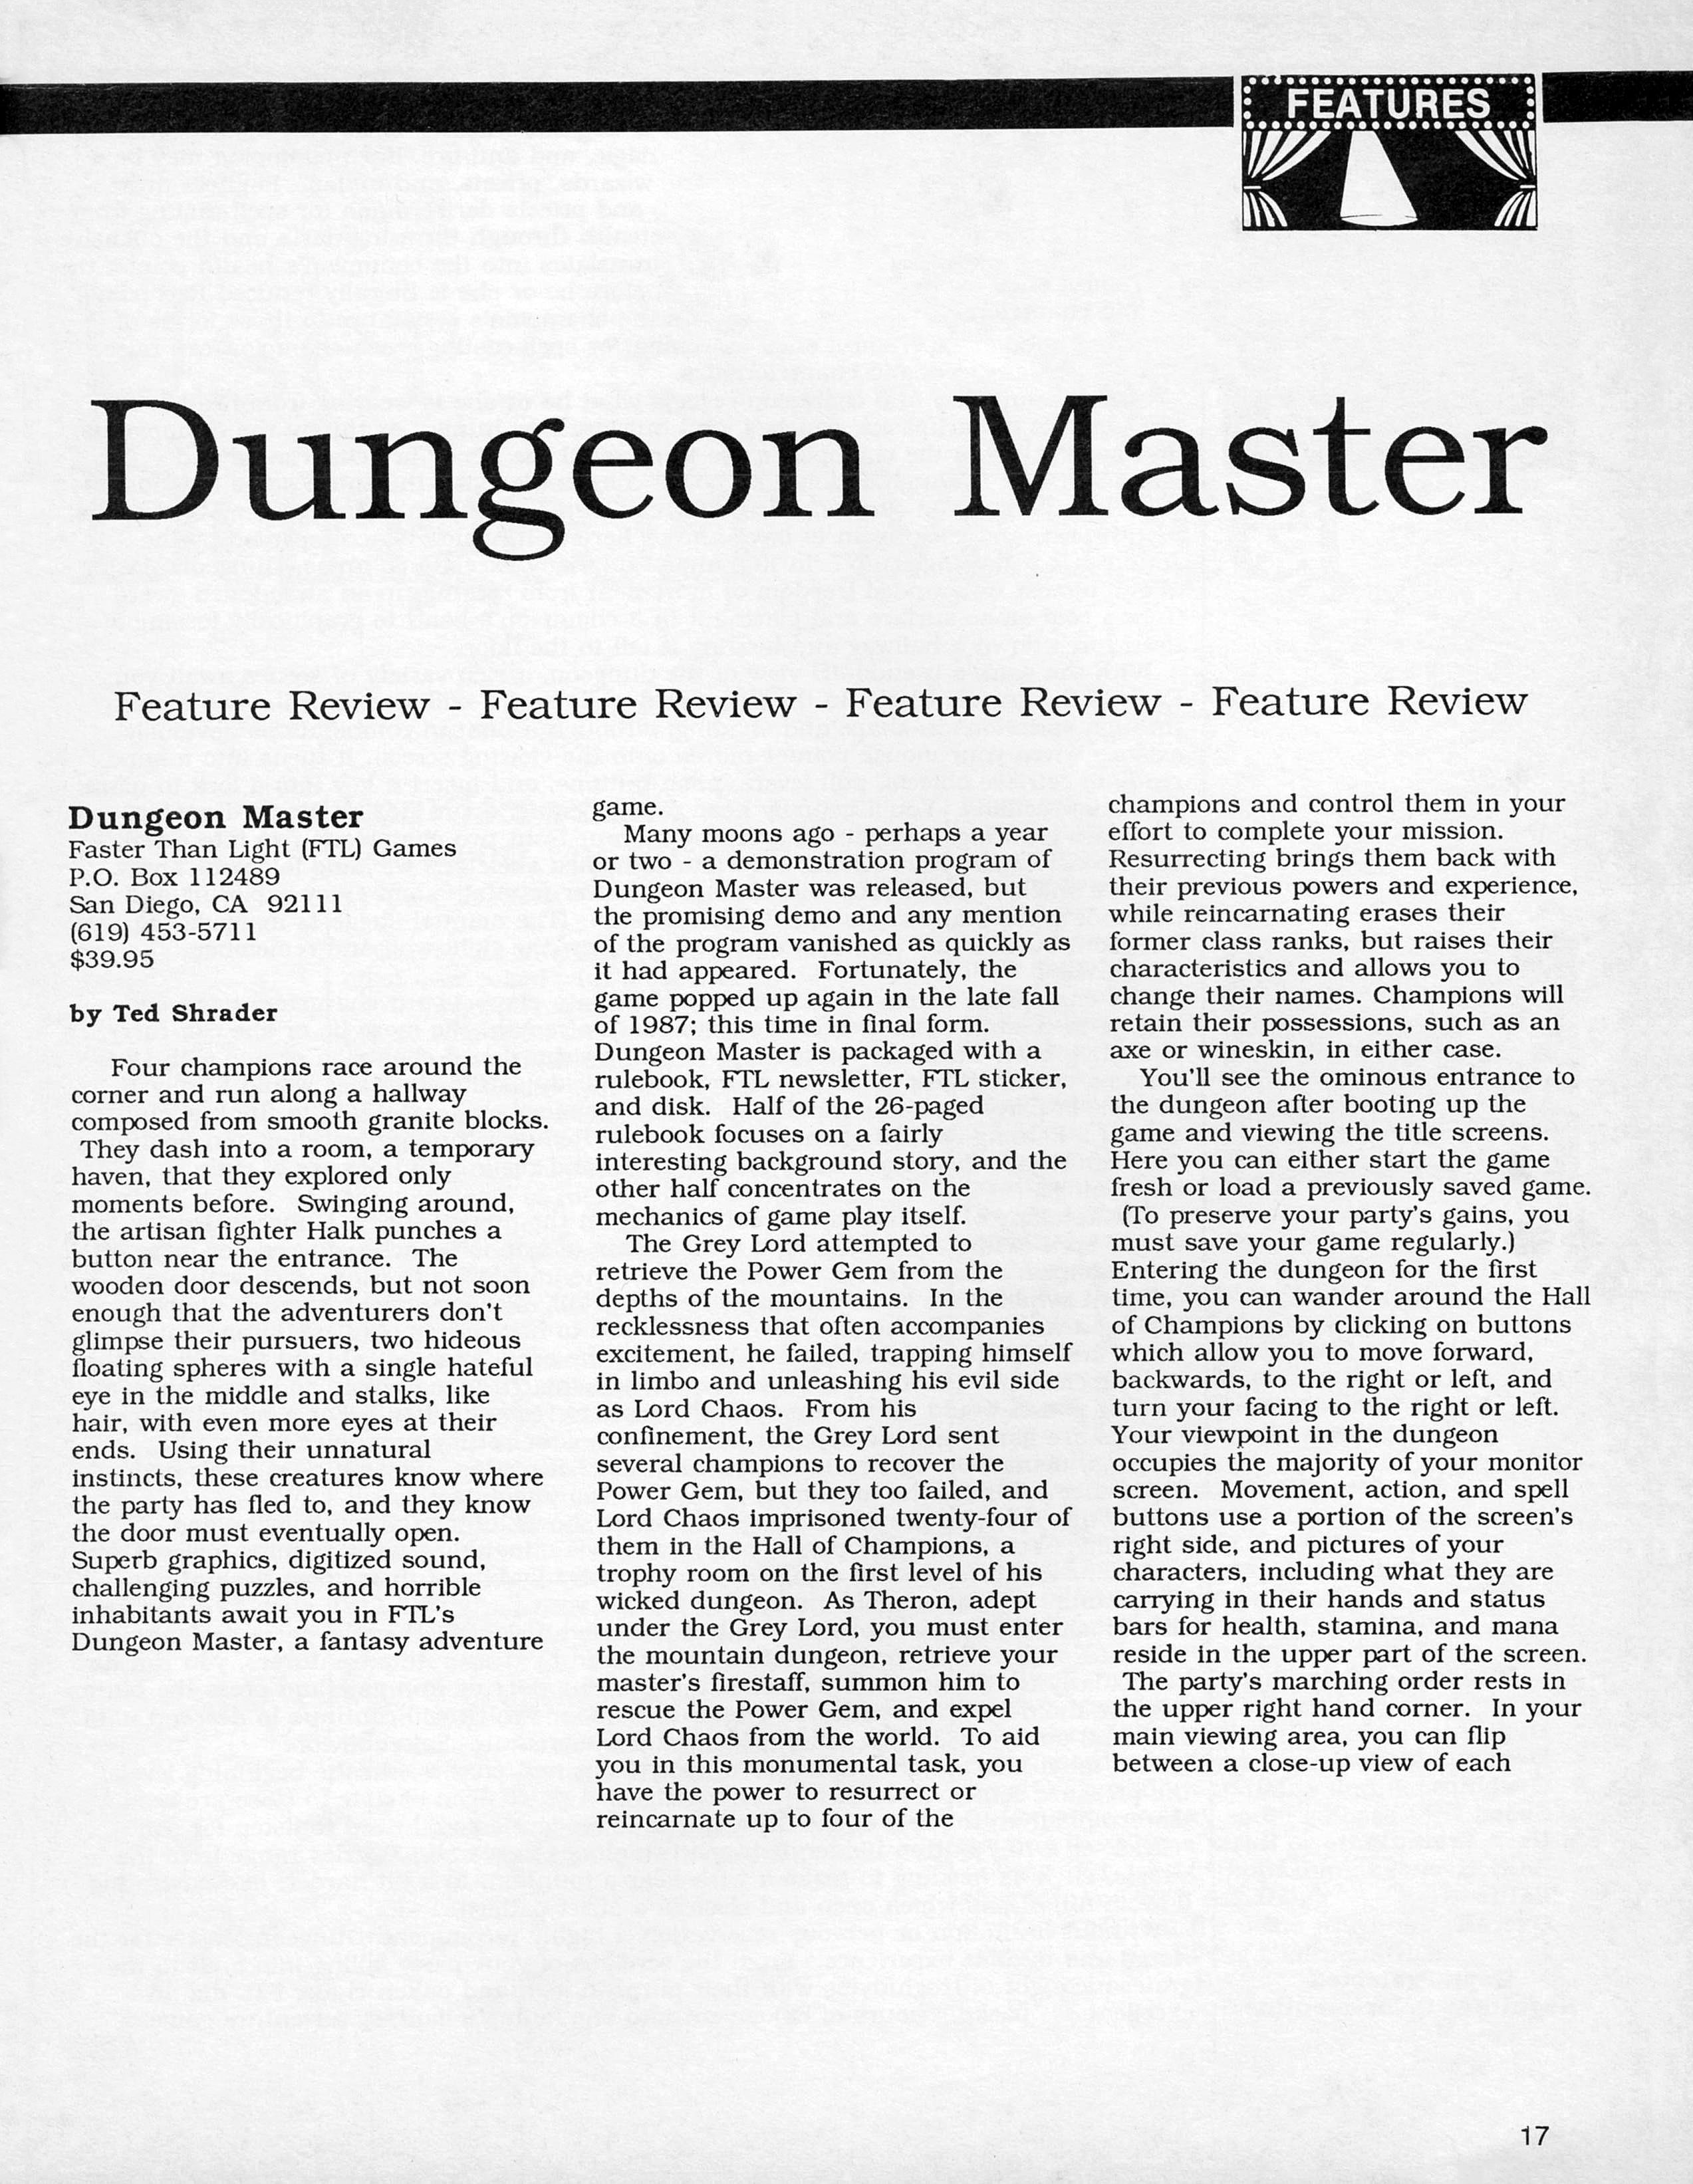 Dungeon Master for Atari ST Review published in American magazine 'ST X-PRESS', Vol 2 No 2 March 1988, Page 17